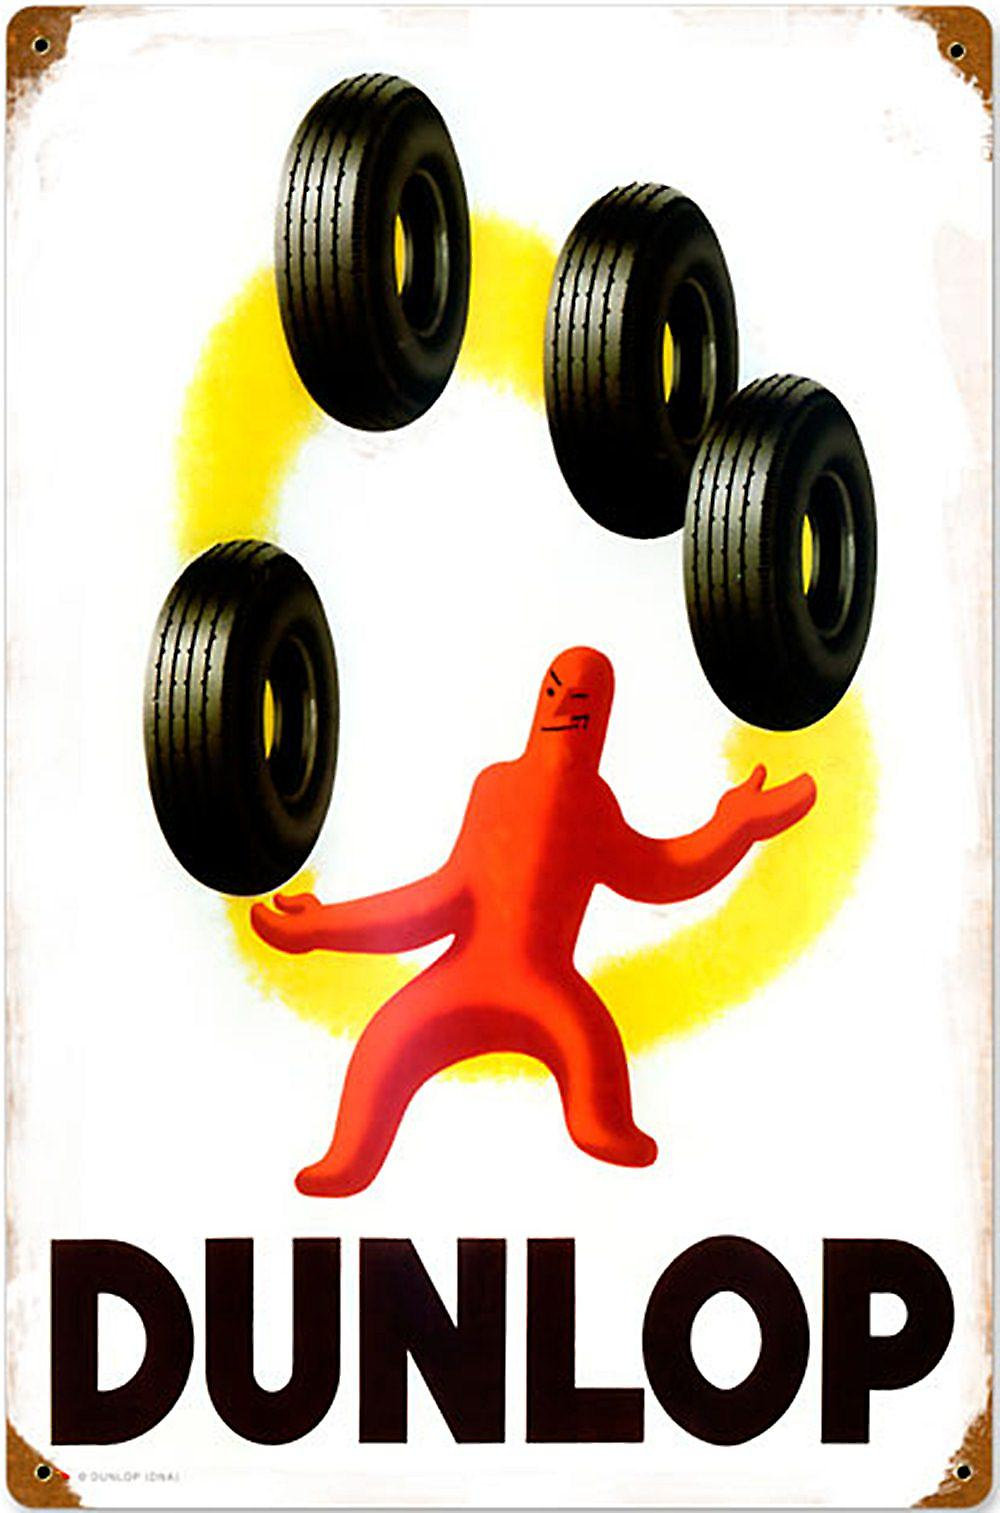 Dunlop Juggling rusted steel sign  (pst 1812)